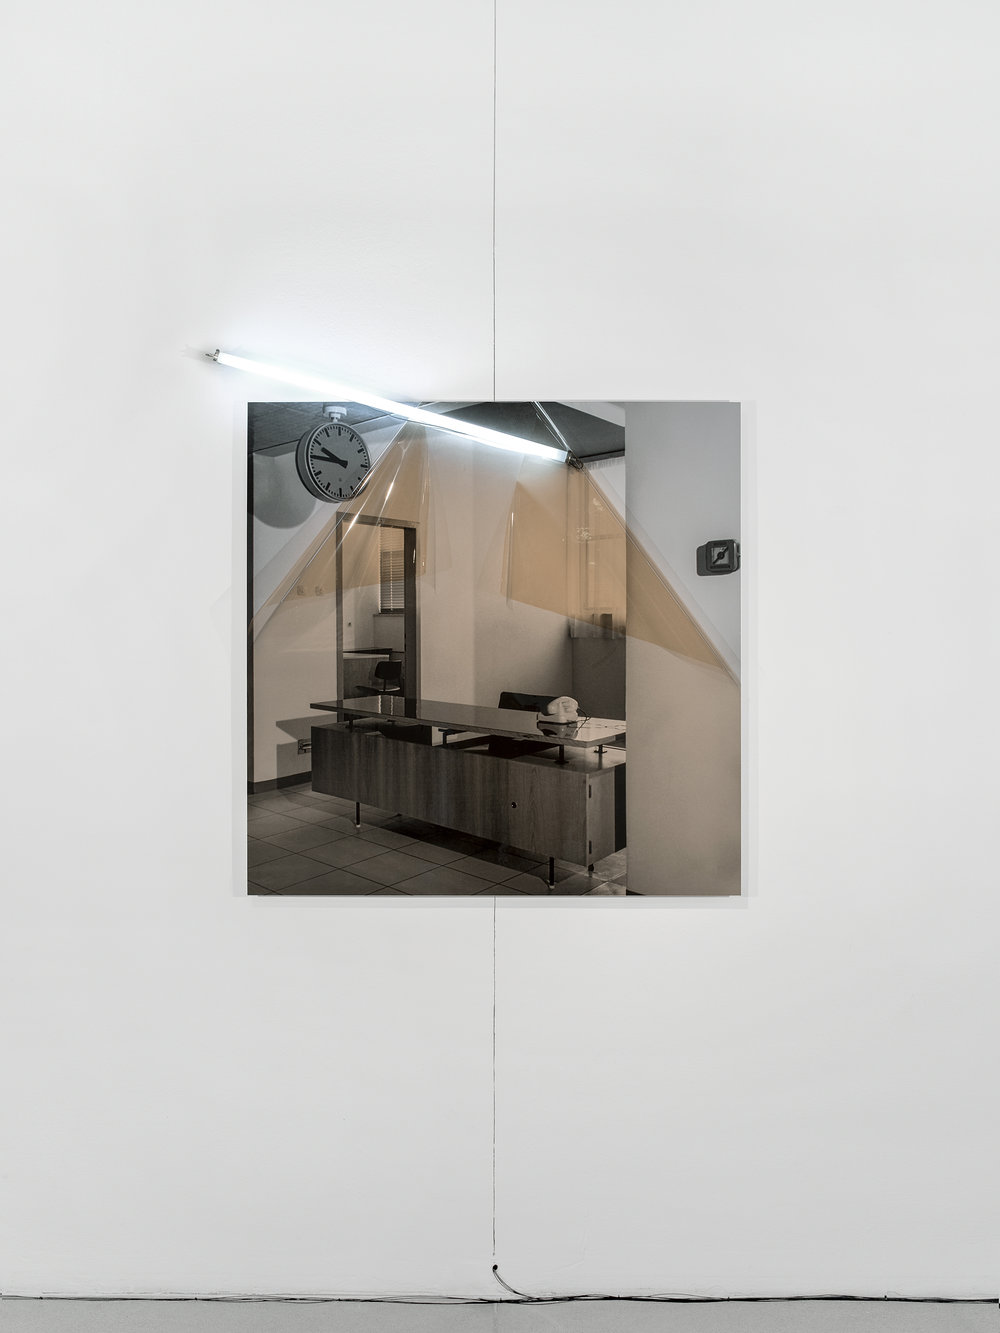 Untitled (Archive ST3: Military Hospital) , 2017  Inkjet print on archival paper mounted on aluminum composite panel, color correction filter, fluorescent light tube, electrical fittings.  49.61 x 49.61 x 1.97in. (126 x 126 x 5cm)